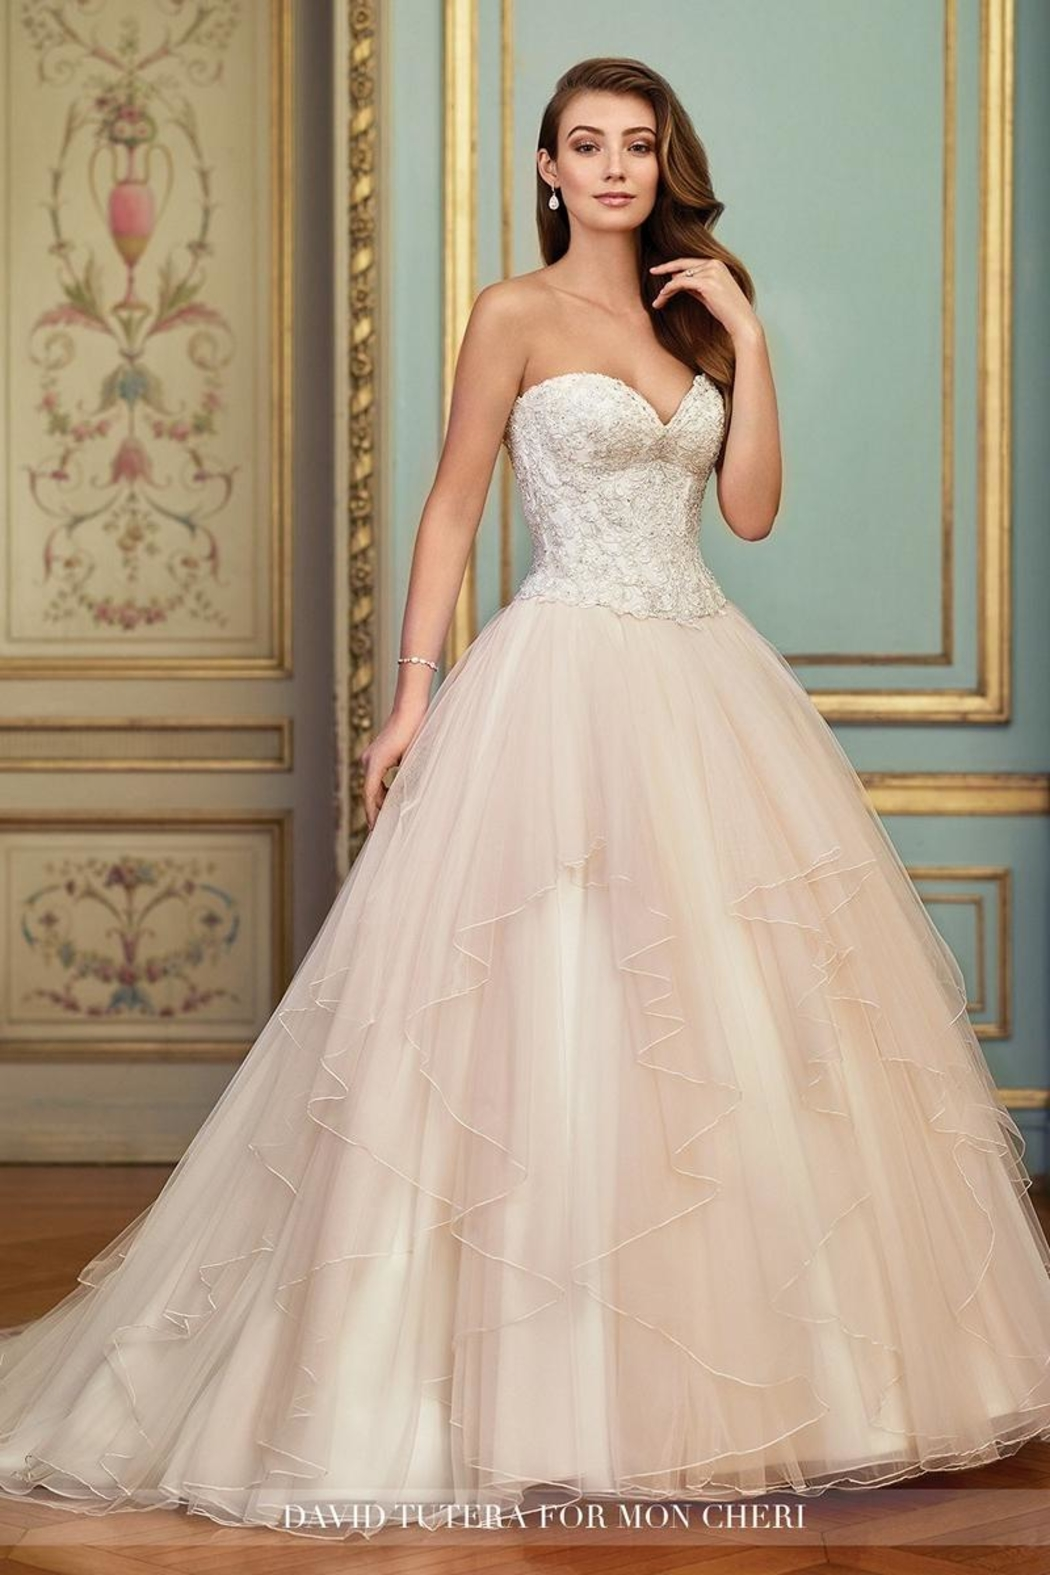 David Tutera for Mon Cheri Layered Tulle Two-Piece - Front Cropped Image